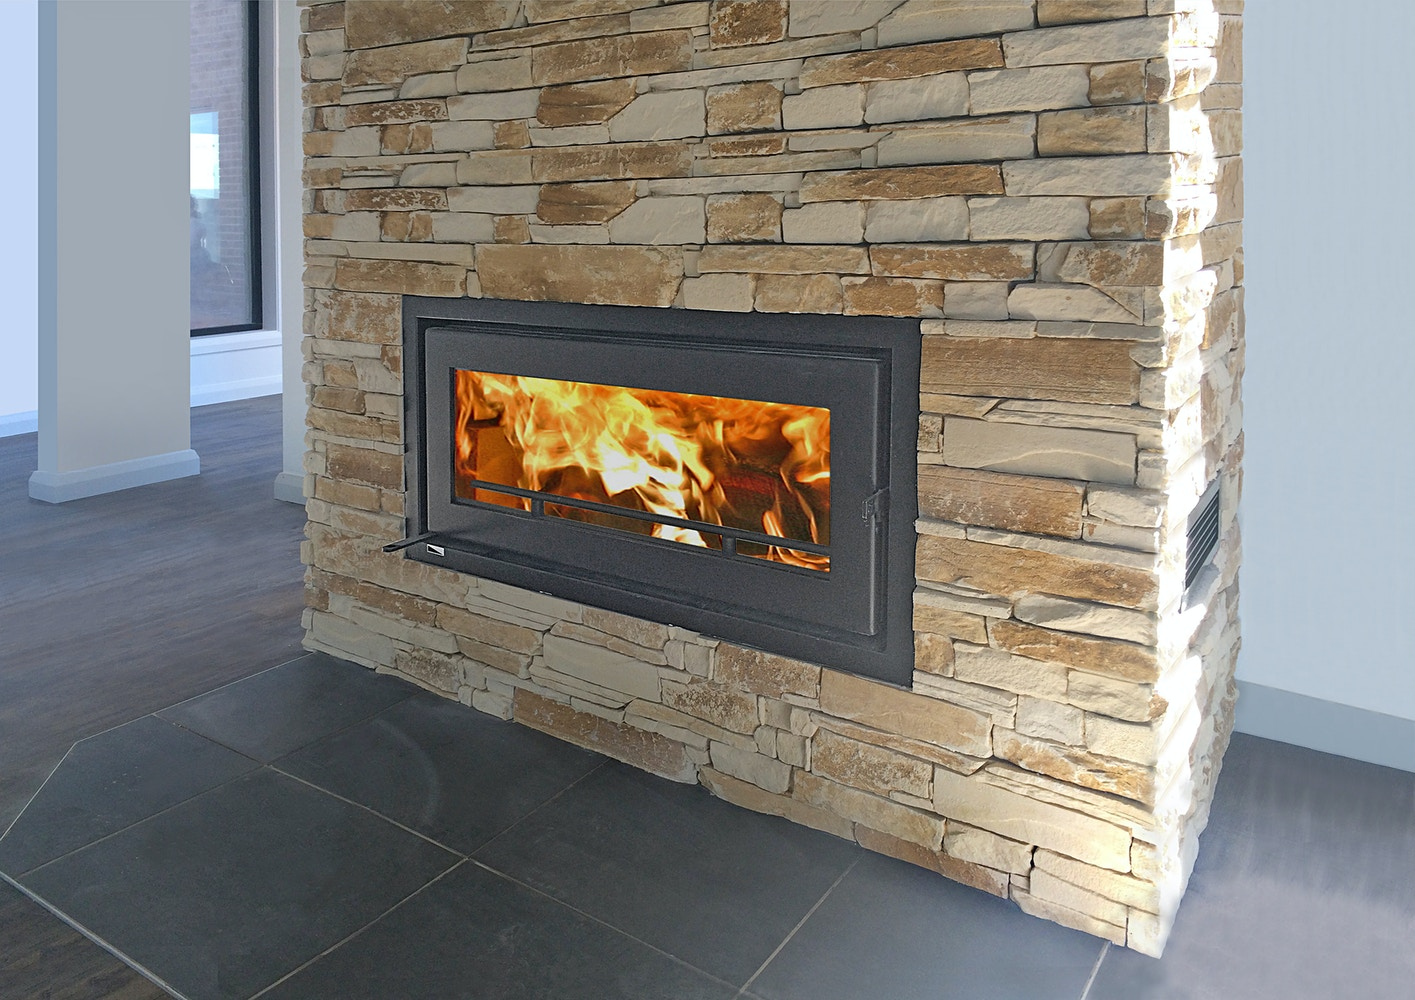 Finding the Most Efficient Wood Heater